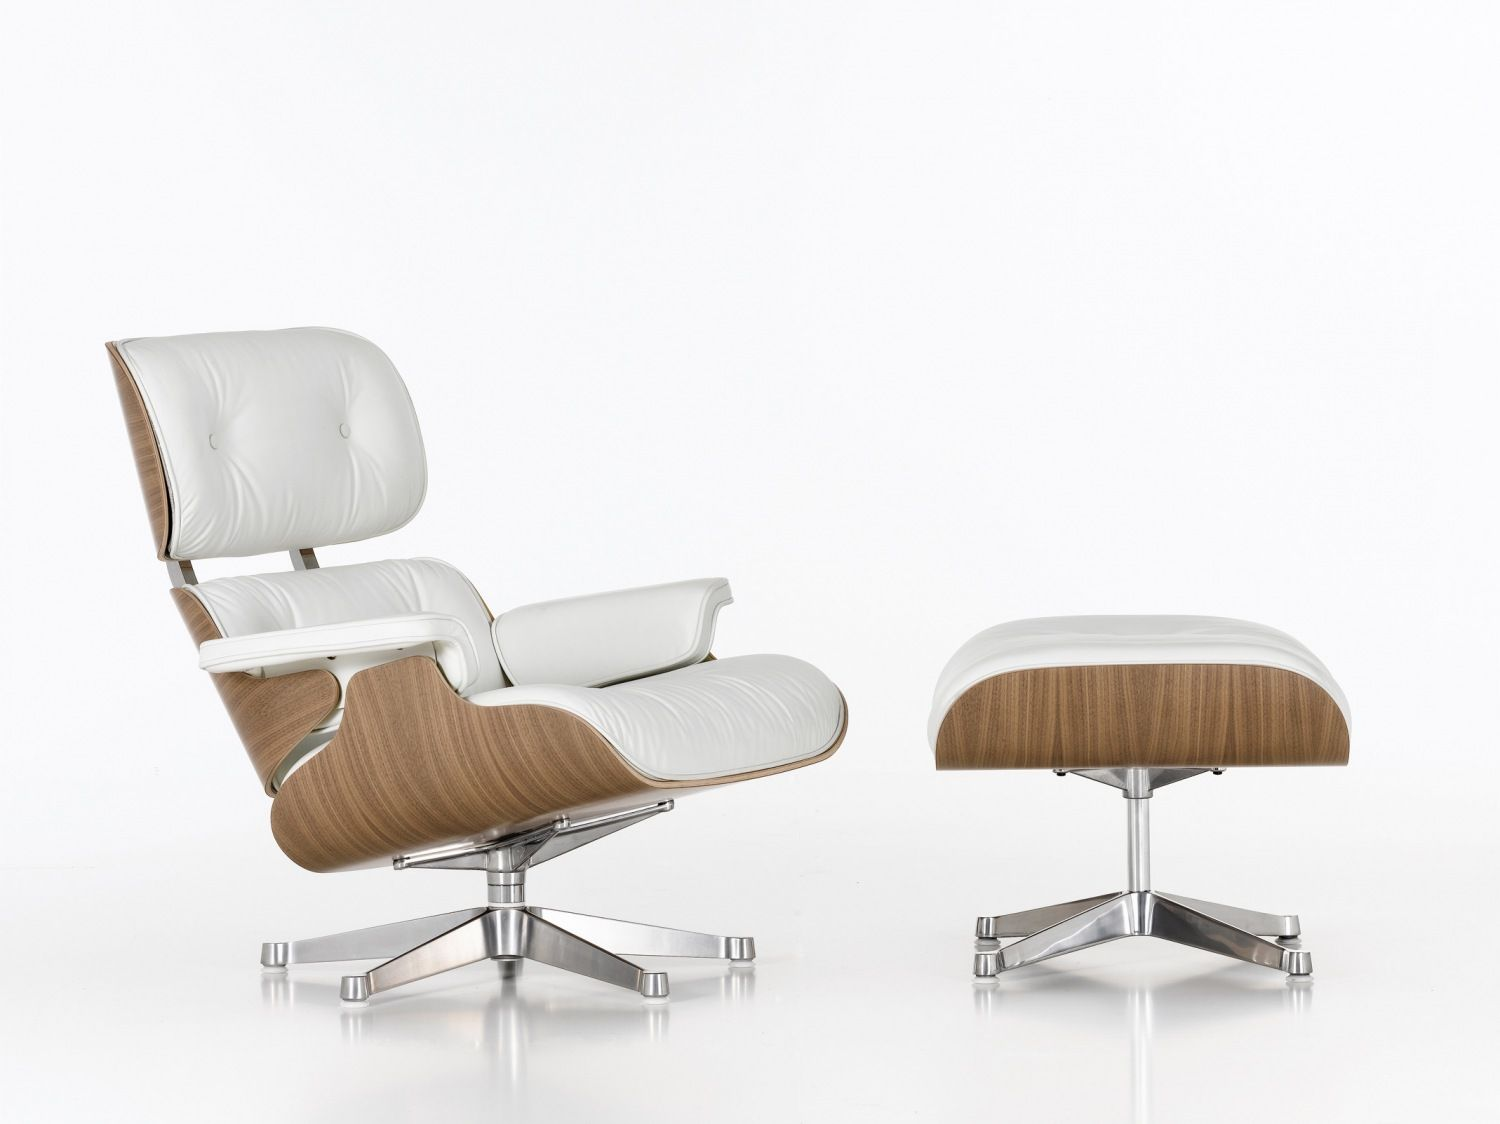 Charles and Ray Eames Eames Lounge Chair Fauteuil